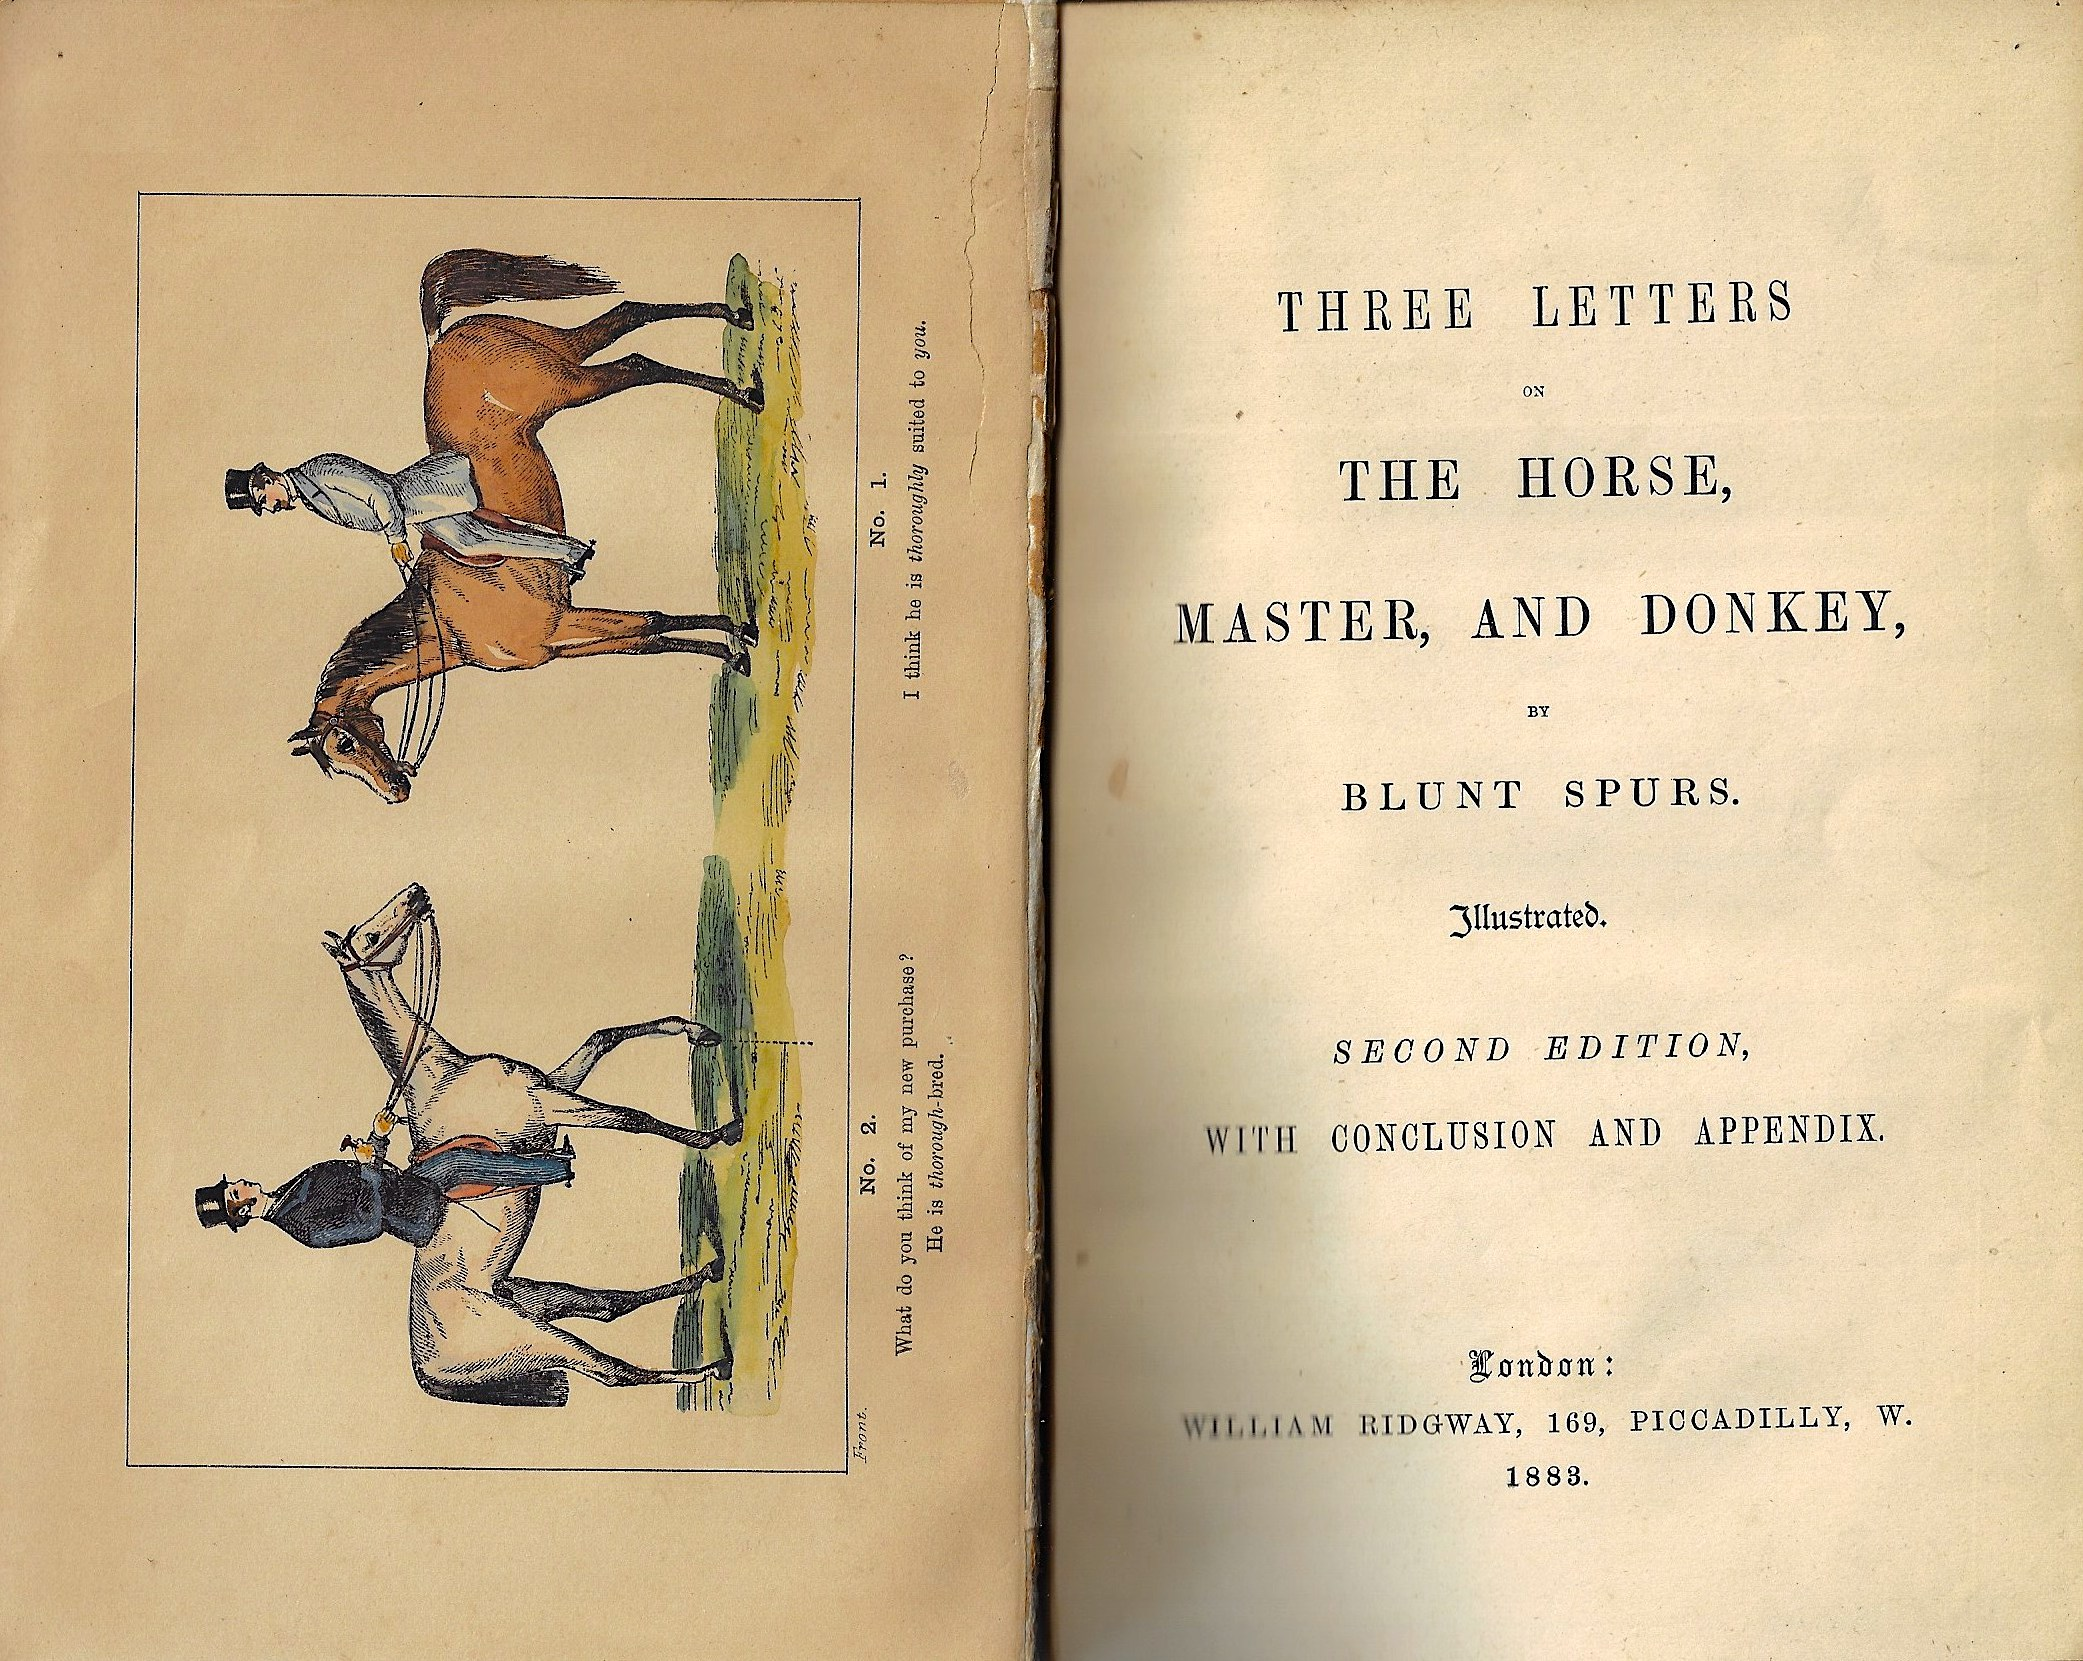 Ridgway  Three Letters on the Horse, Master, and Donkey, by Blunt Spurs. Illustrated second edition with conclusion and appendix. London: William Ridgway,169..